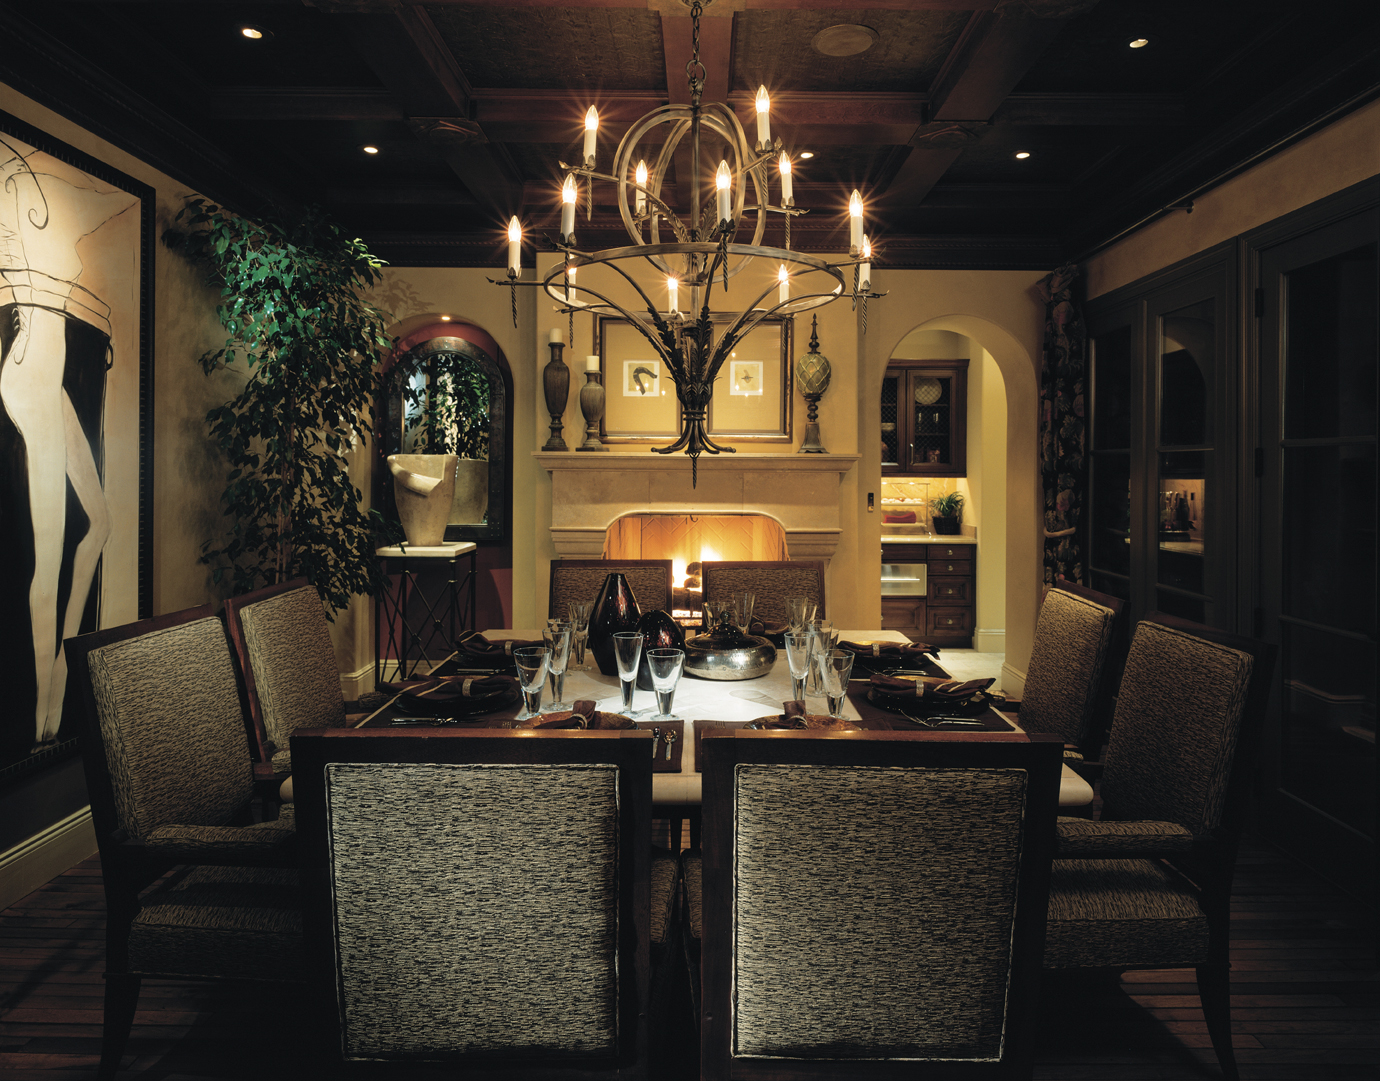 Unique dining room lighting large and beautiful photos for Unique dining room